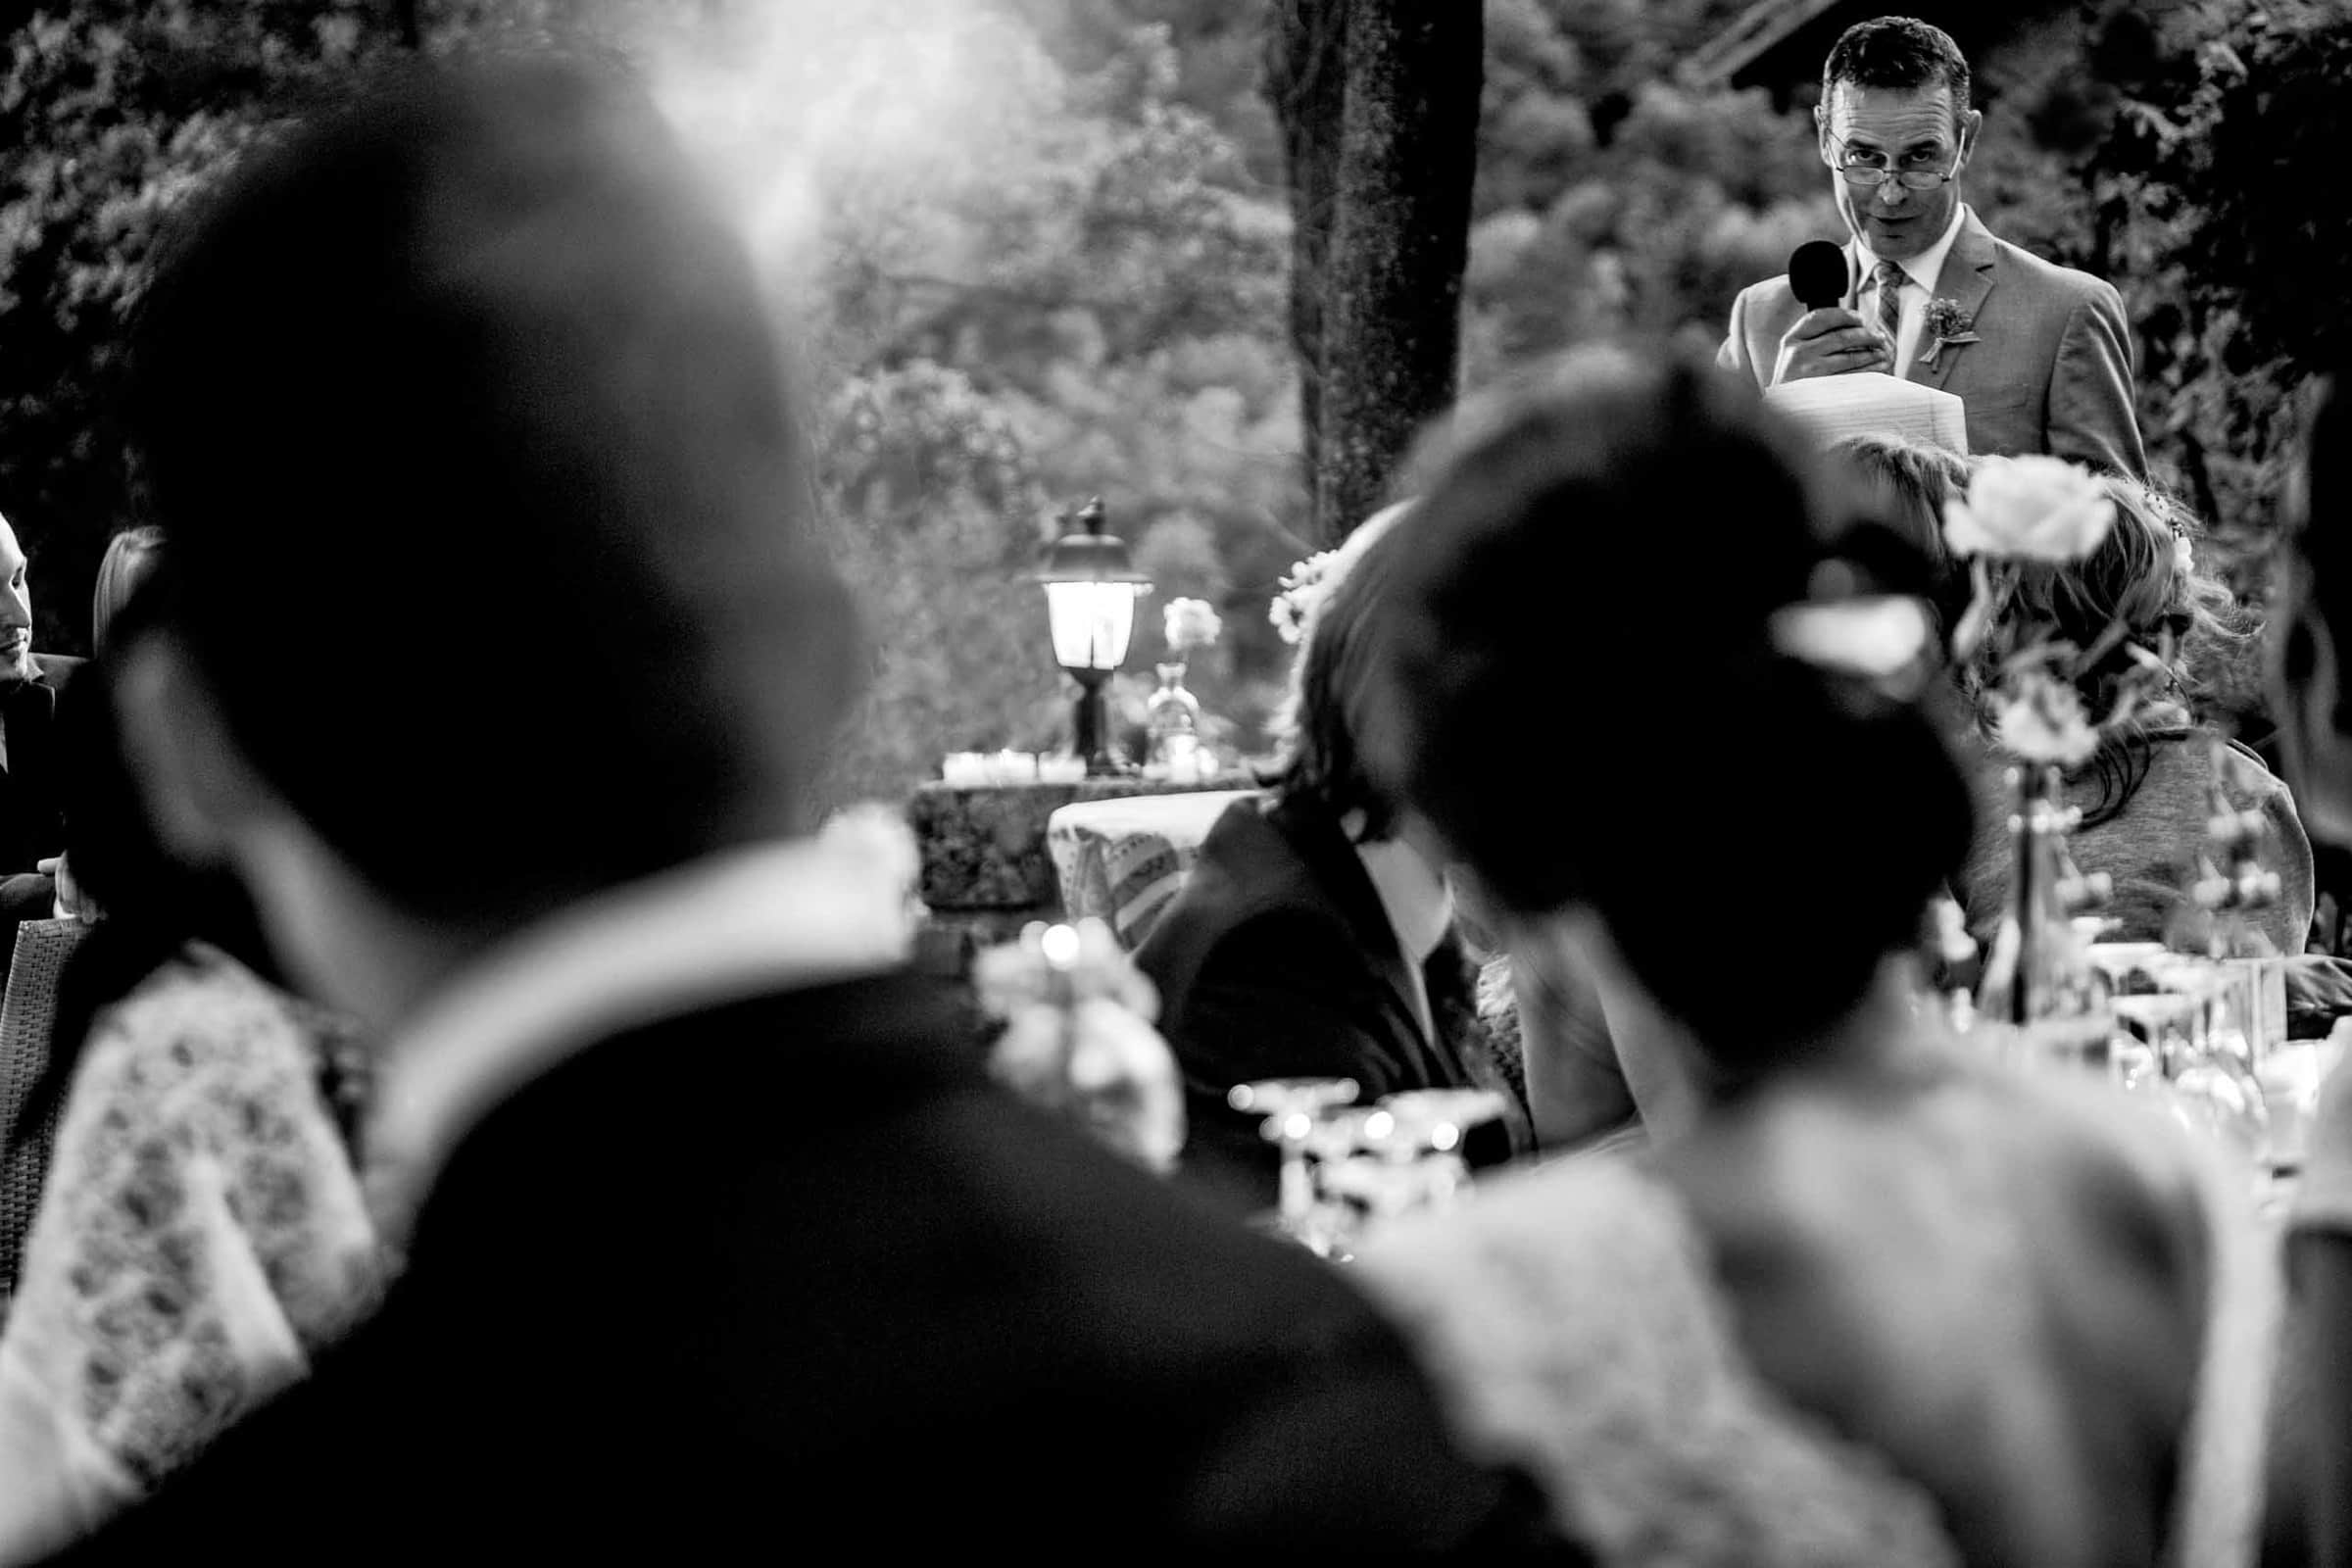 Fathers speech at a Chateau Zen wedding in the South of France near Montepelier.